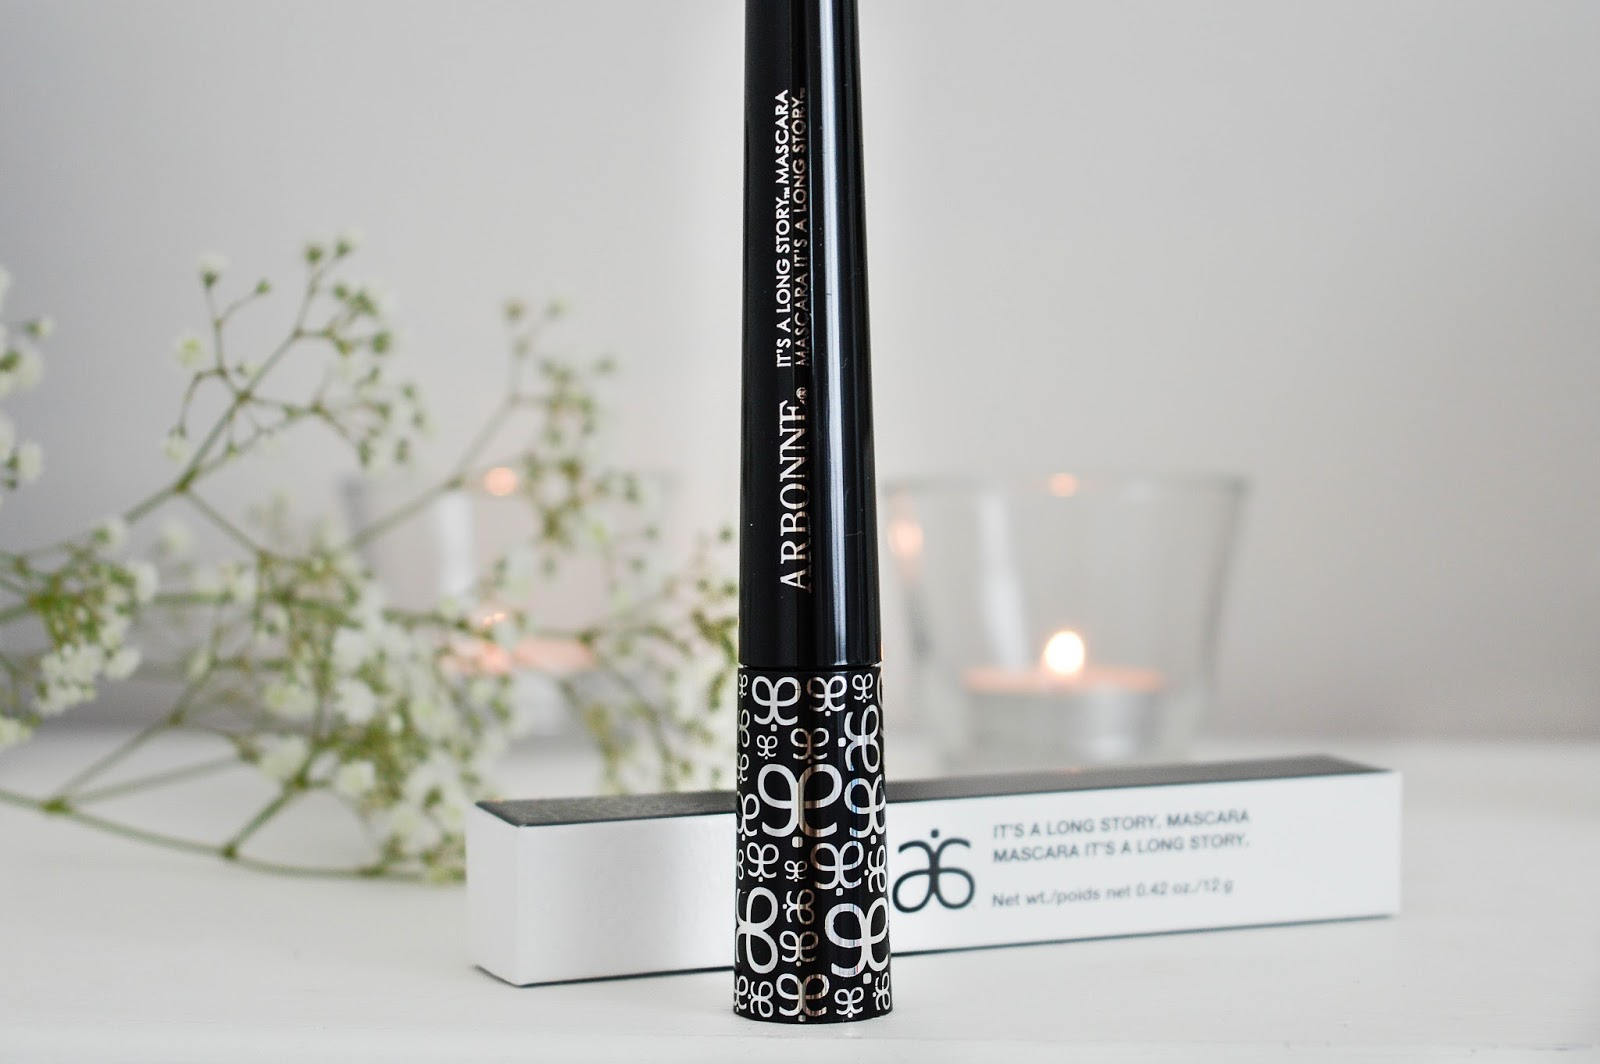 Arbonne It's a Long Story mascara review, UK beauty blogs